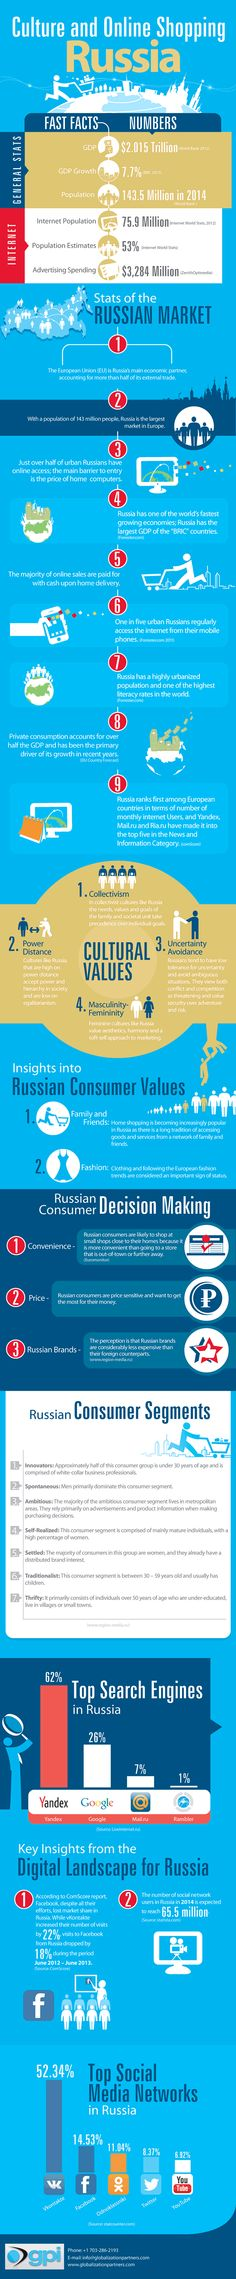 """[infographic] """"Culture and Online shopping in Russia"""" Jun-2014 by Globalizationpartners.com – Top Search Engine & Social Networks market share in Russia"""